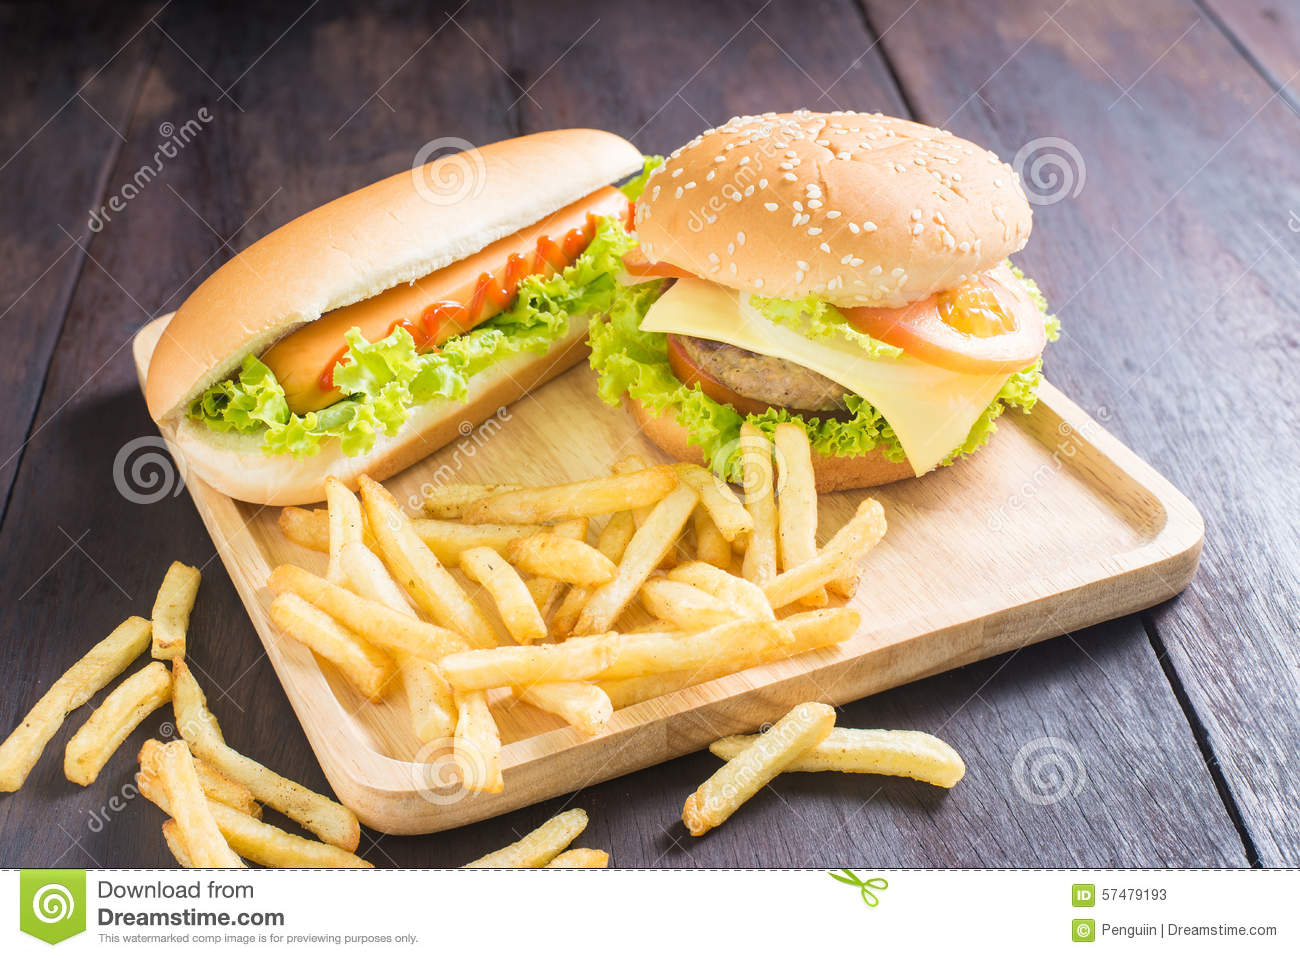 hamburger hot dog pommes frites sur le bois image stock image 57479193. Black Bedroom Furniture Sets. Home Design Ideas